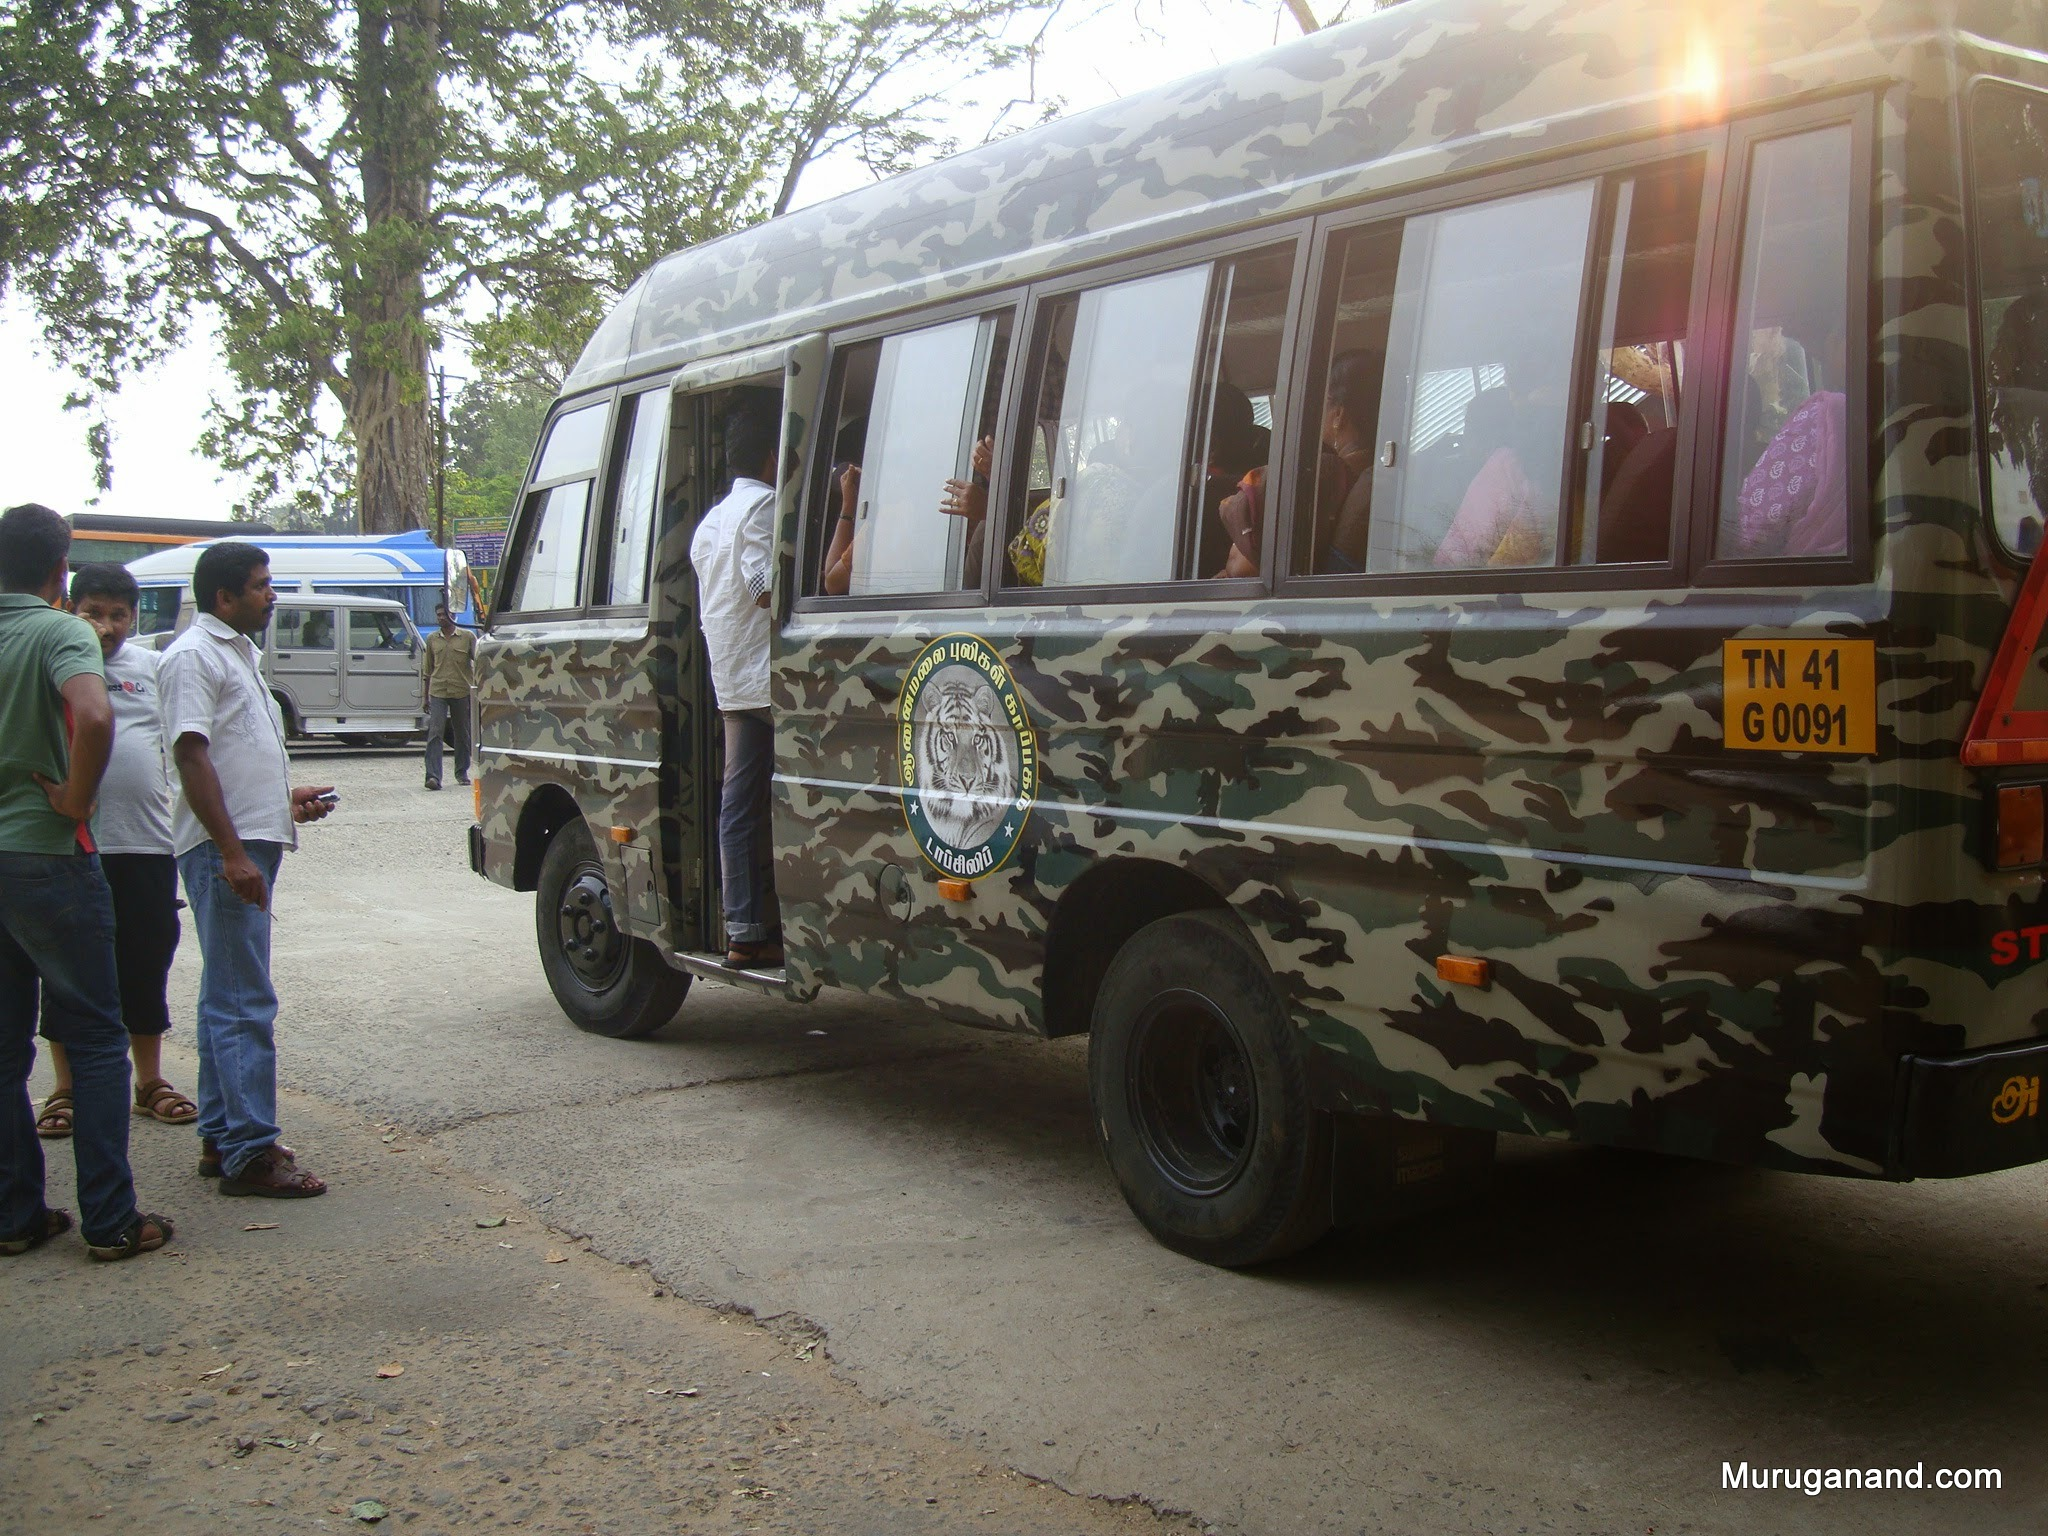 These vans take visitors to Elephant Camp (8 miles) right into the forest